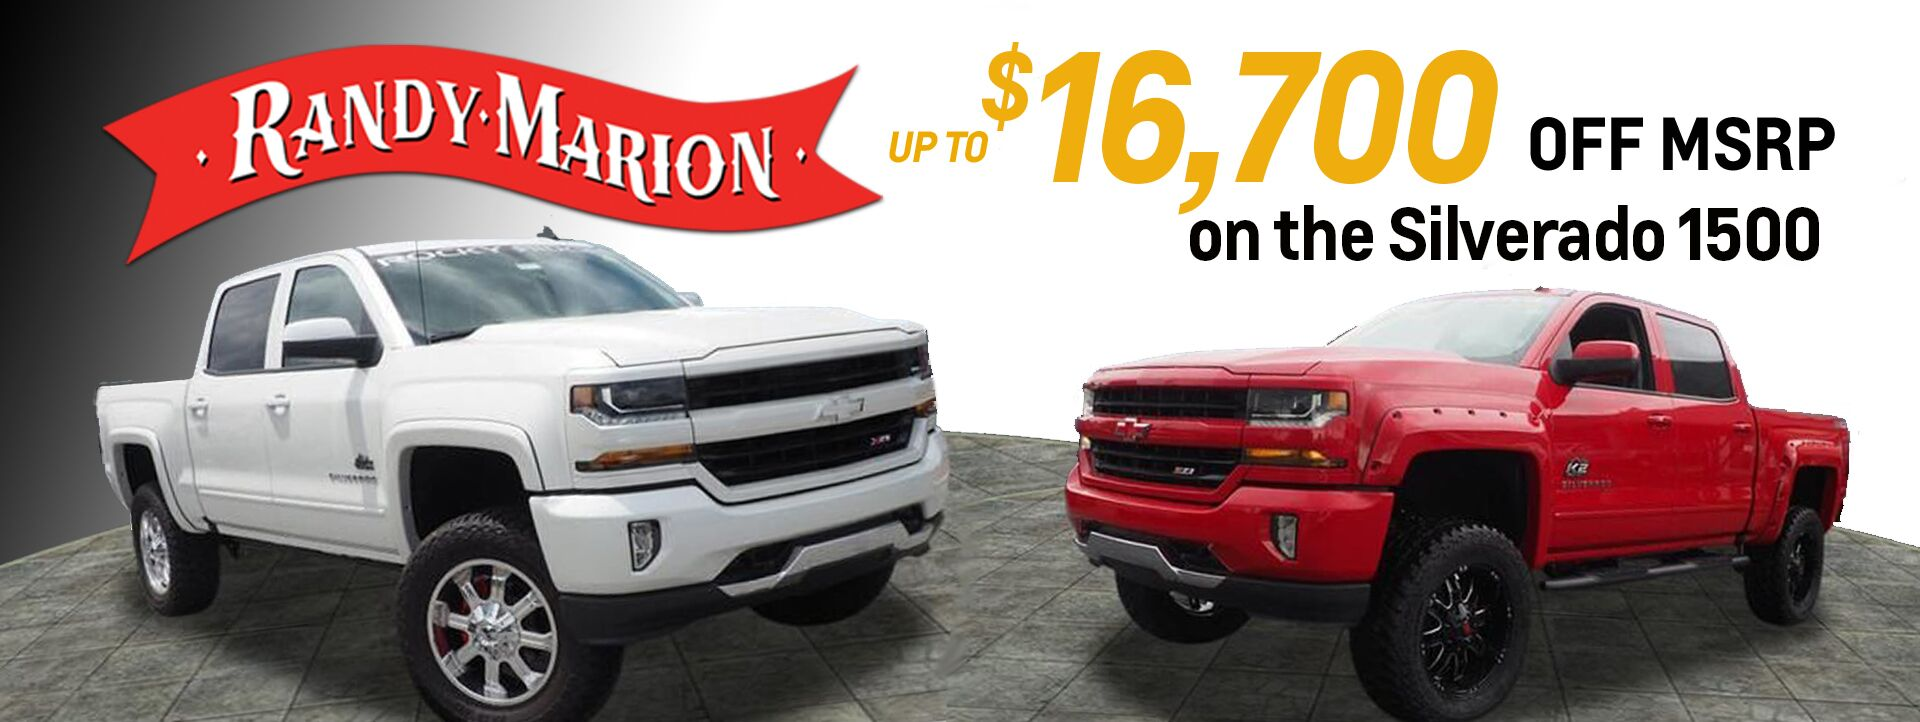 Randy Marion has the Trucks! Up to $16700 OFF